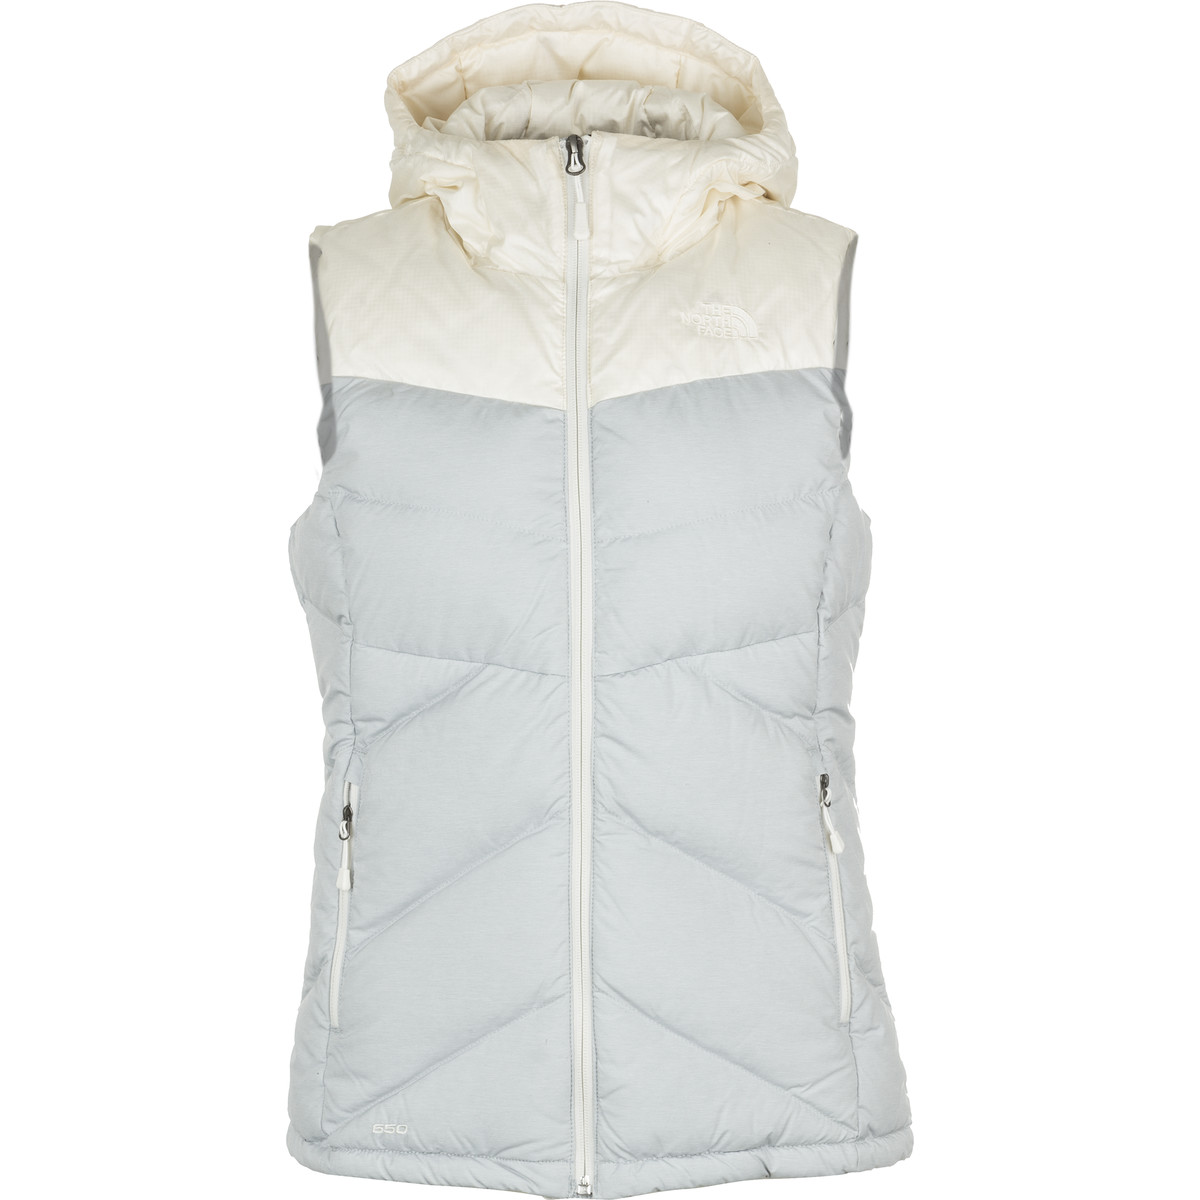 The North Face Kailash Hooded Vest